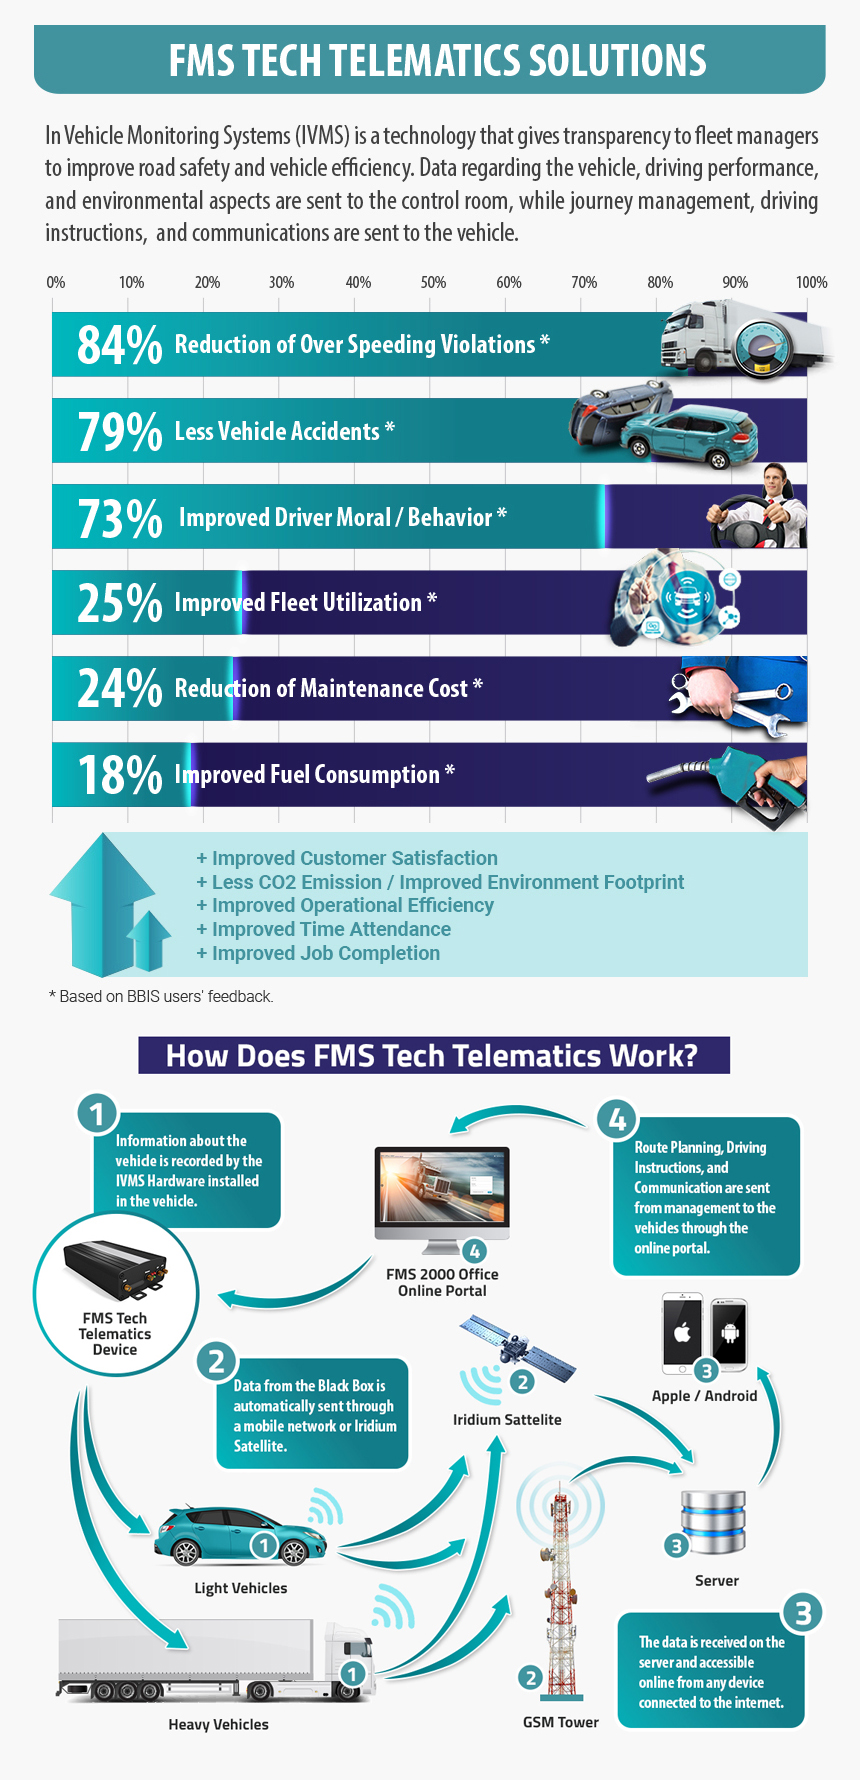 FMS Tech Telematics Solutions Vertical Infographic